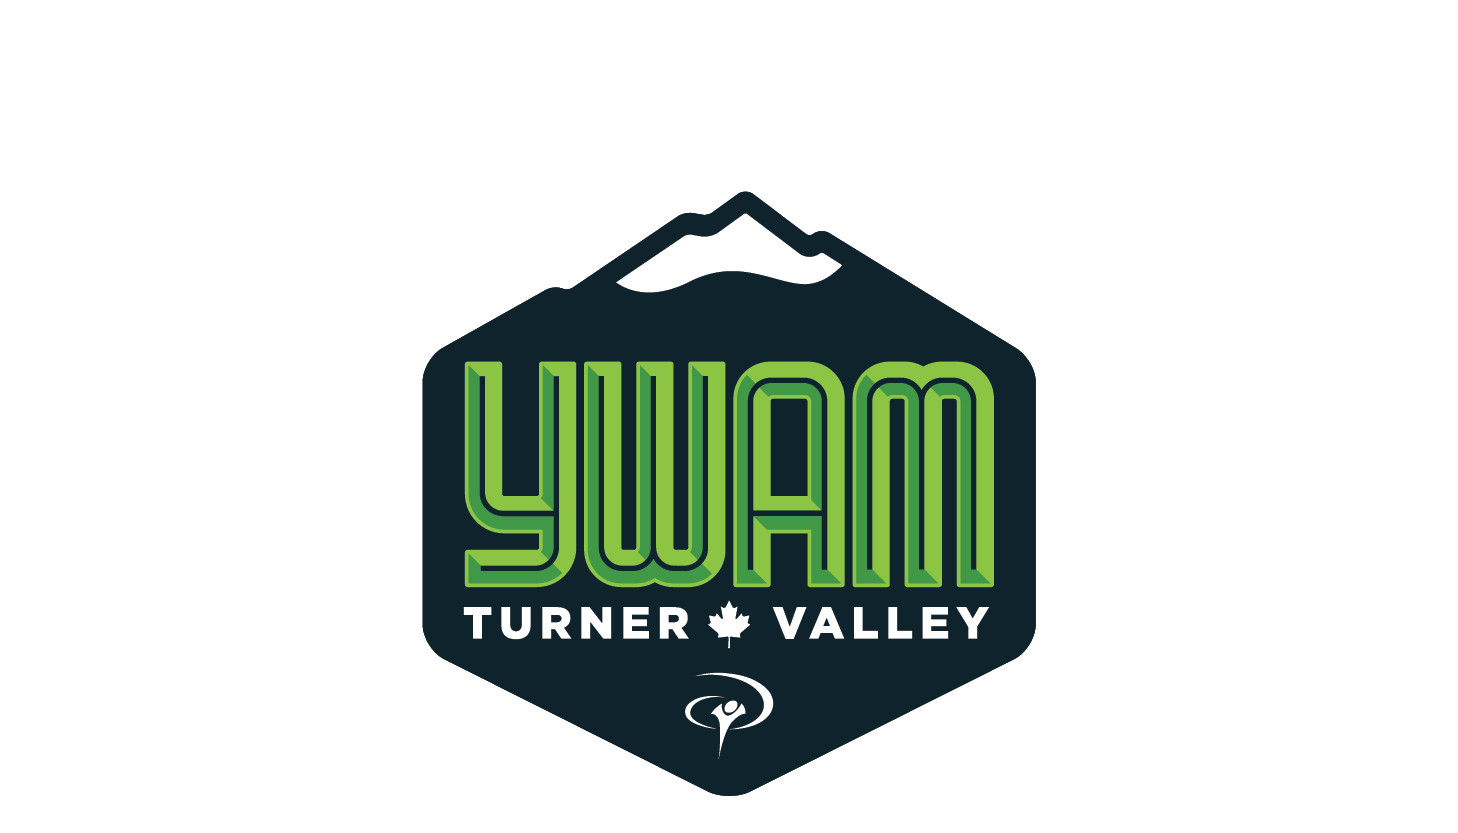 YWAM Turner Valley